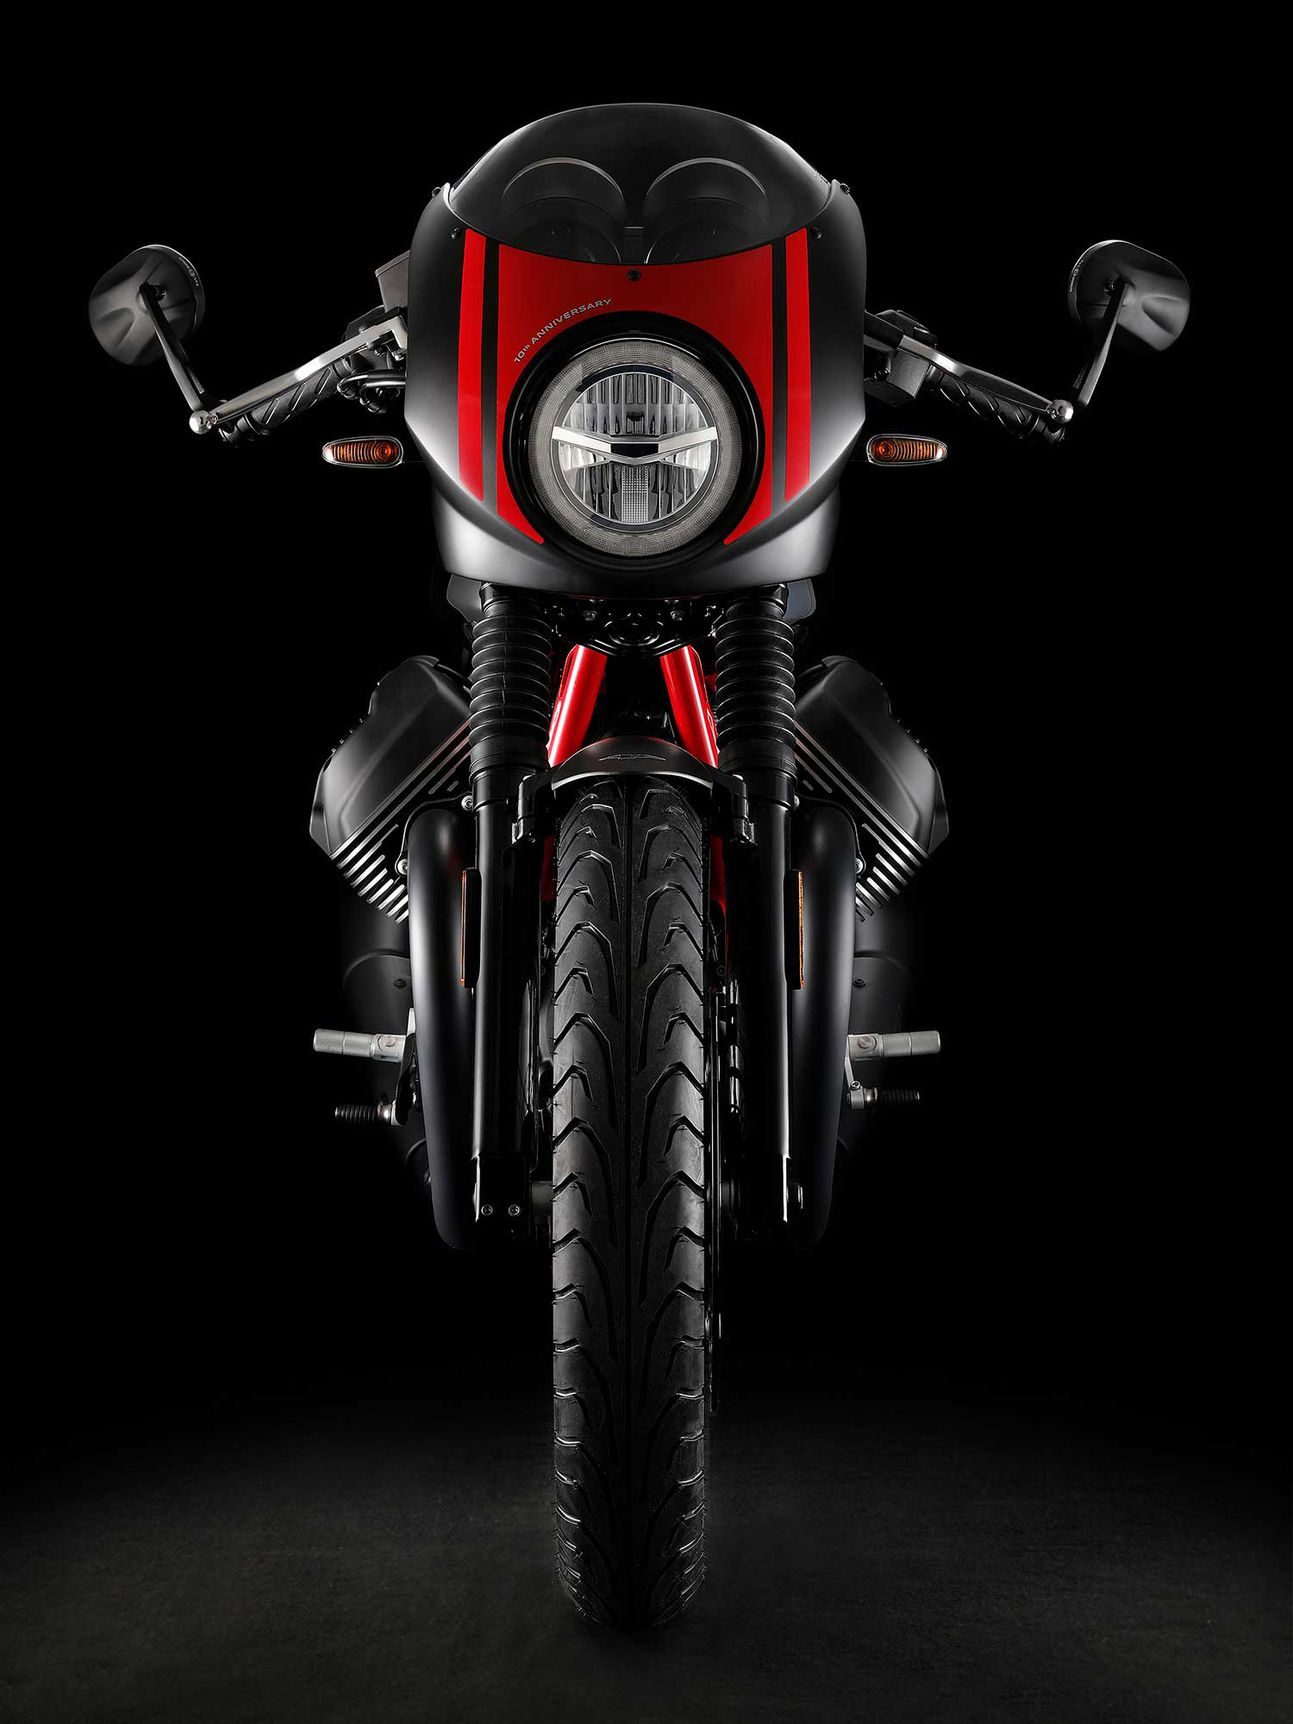 A new LED headlight is joined by LED turn and taillights, while a set of new bar-end mirrors make their debut on the Moto Guzzi's unmistakable profile.